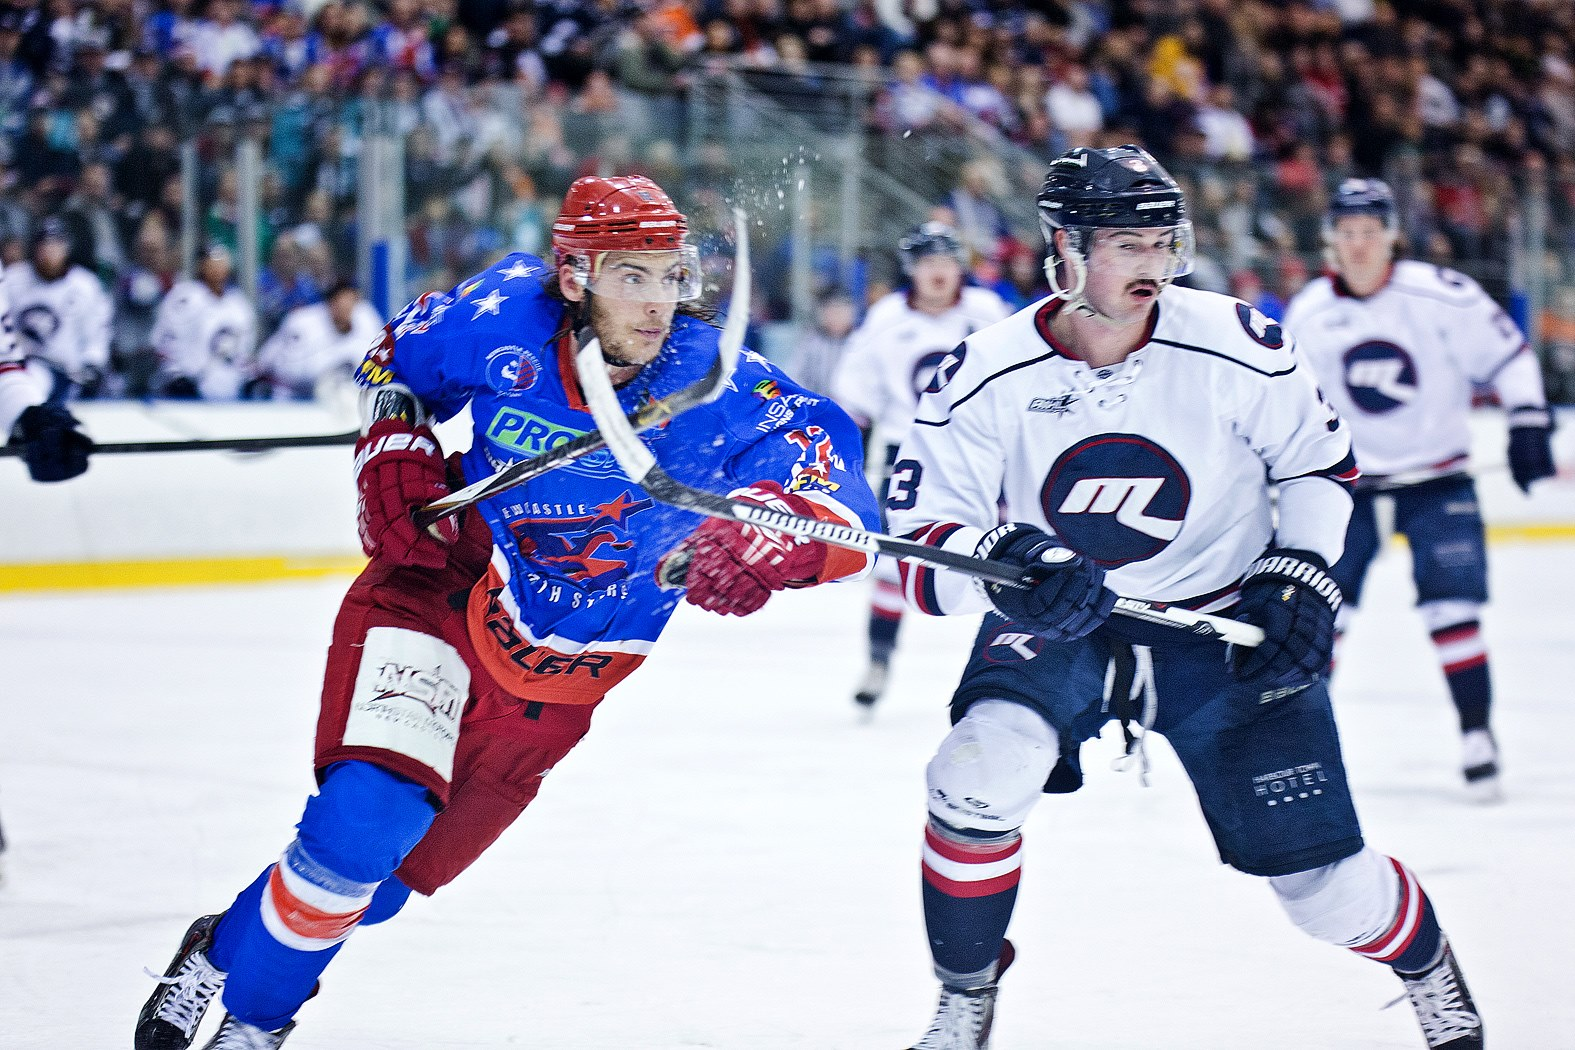 2015 AIHL Grand Final game between Melbourne Ice and New Castle North Stars